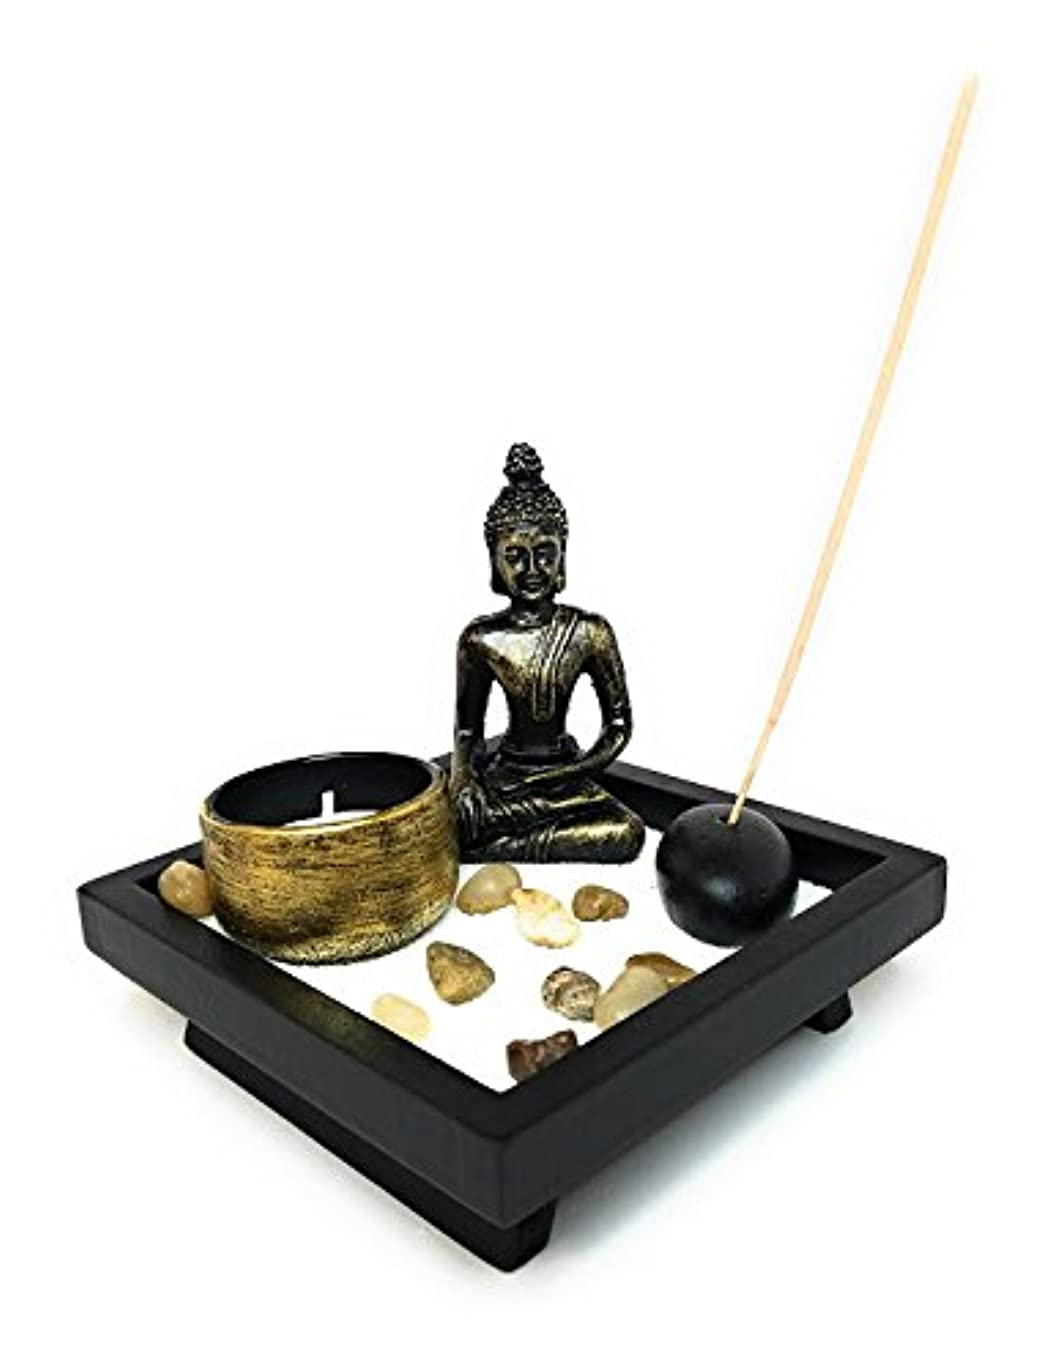 廃棄する崇拝します消毒するZen Garden with Buddha、Tea Light Candle and Incense Holder – Perfect for瞑想( 5